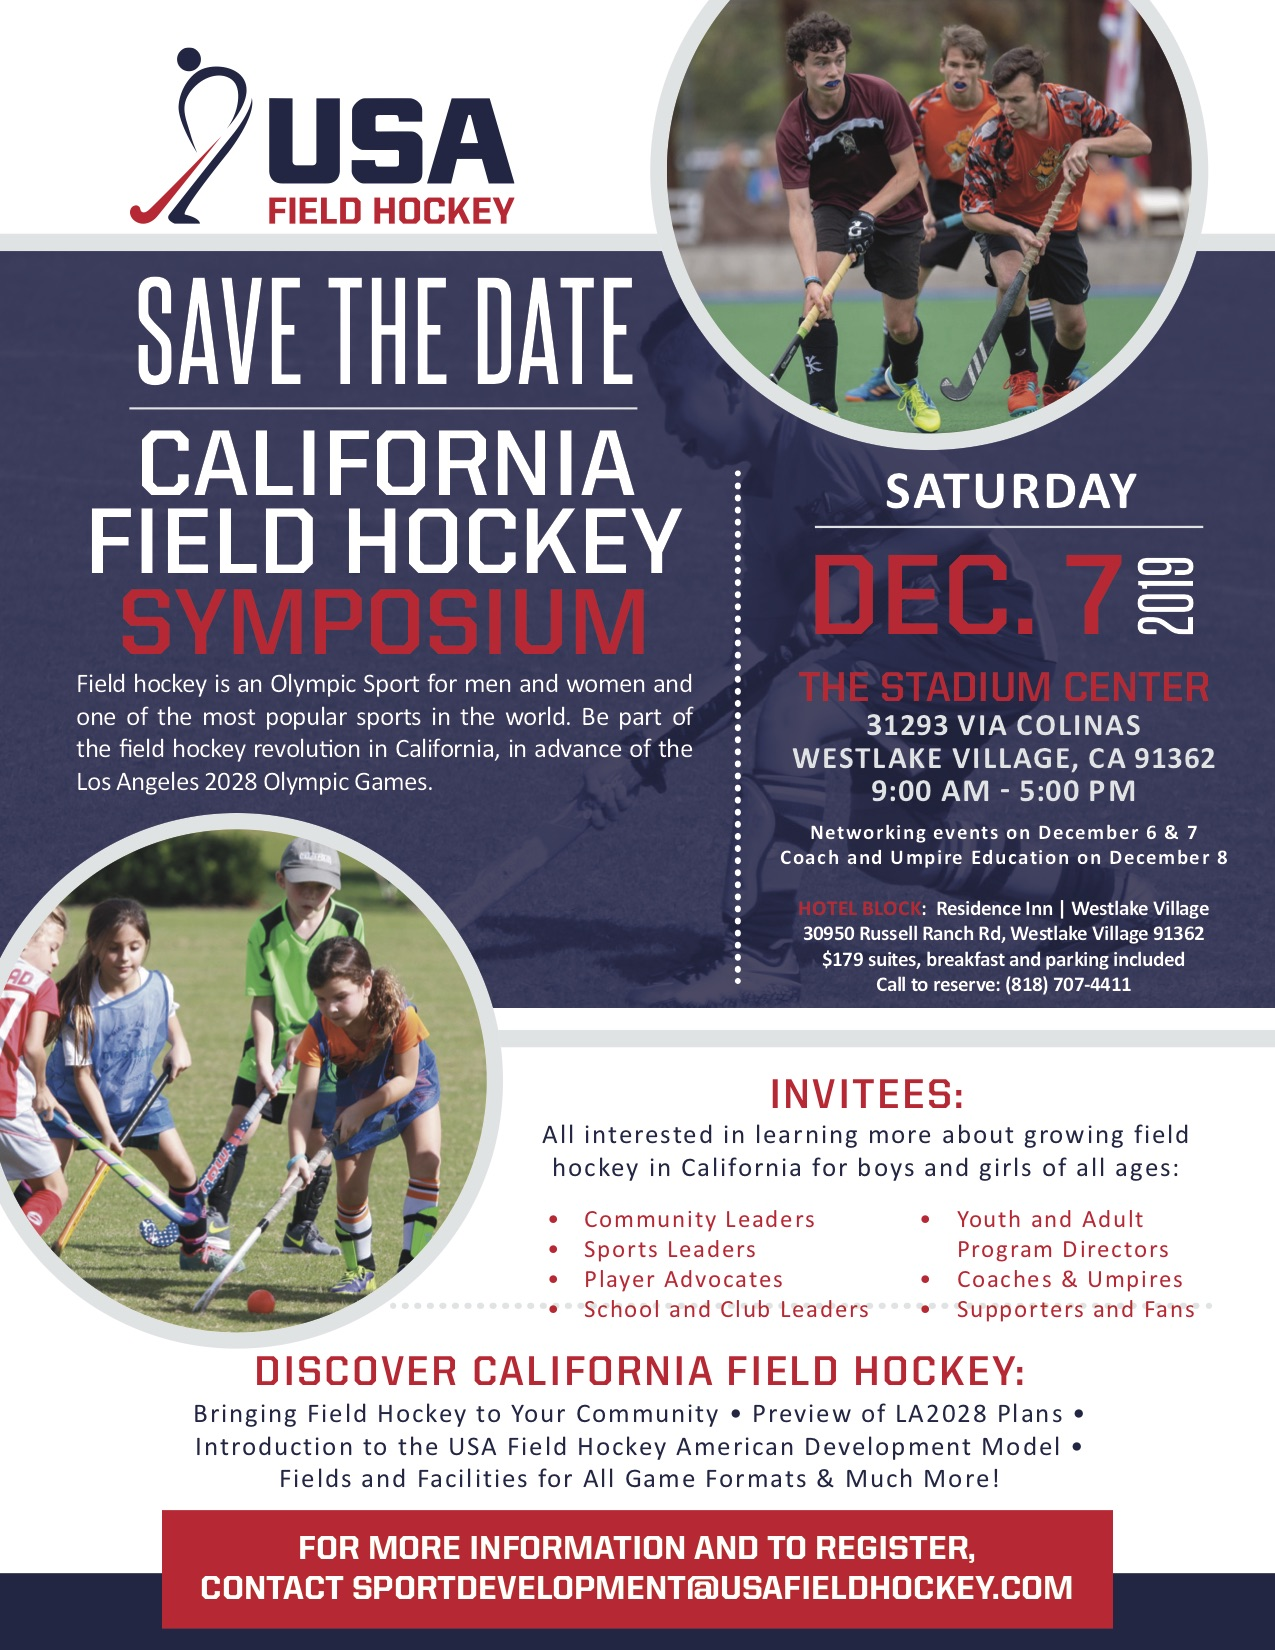 CA FH Symposium Save the Date 7.11.19.jpg